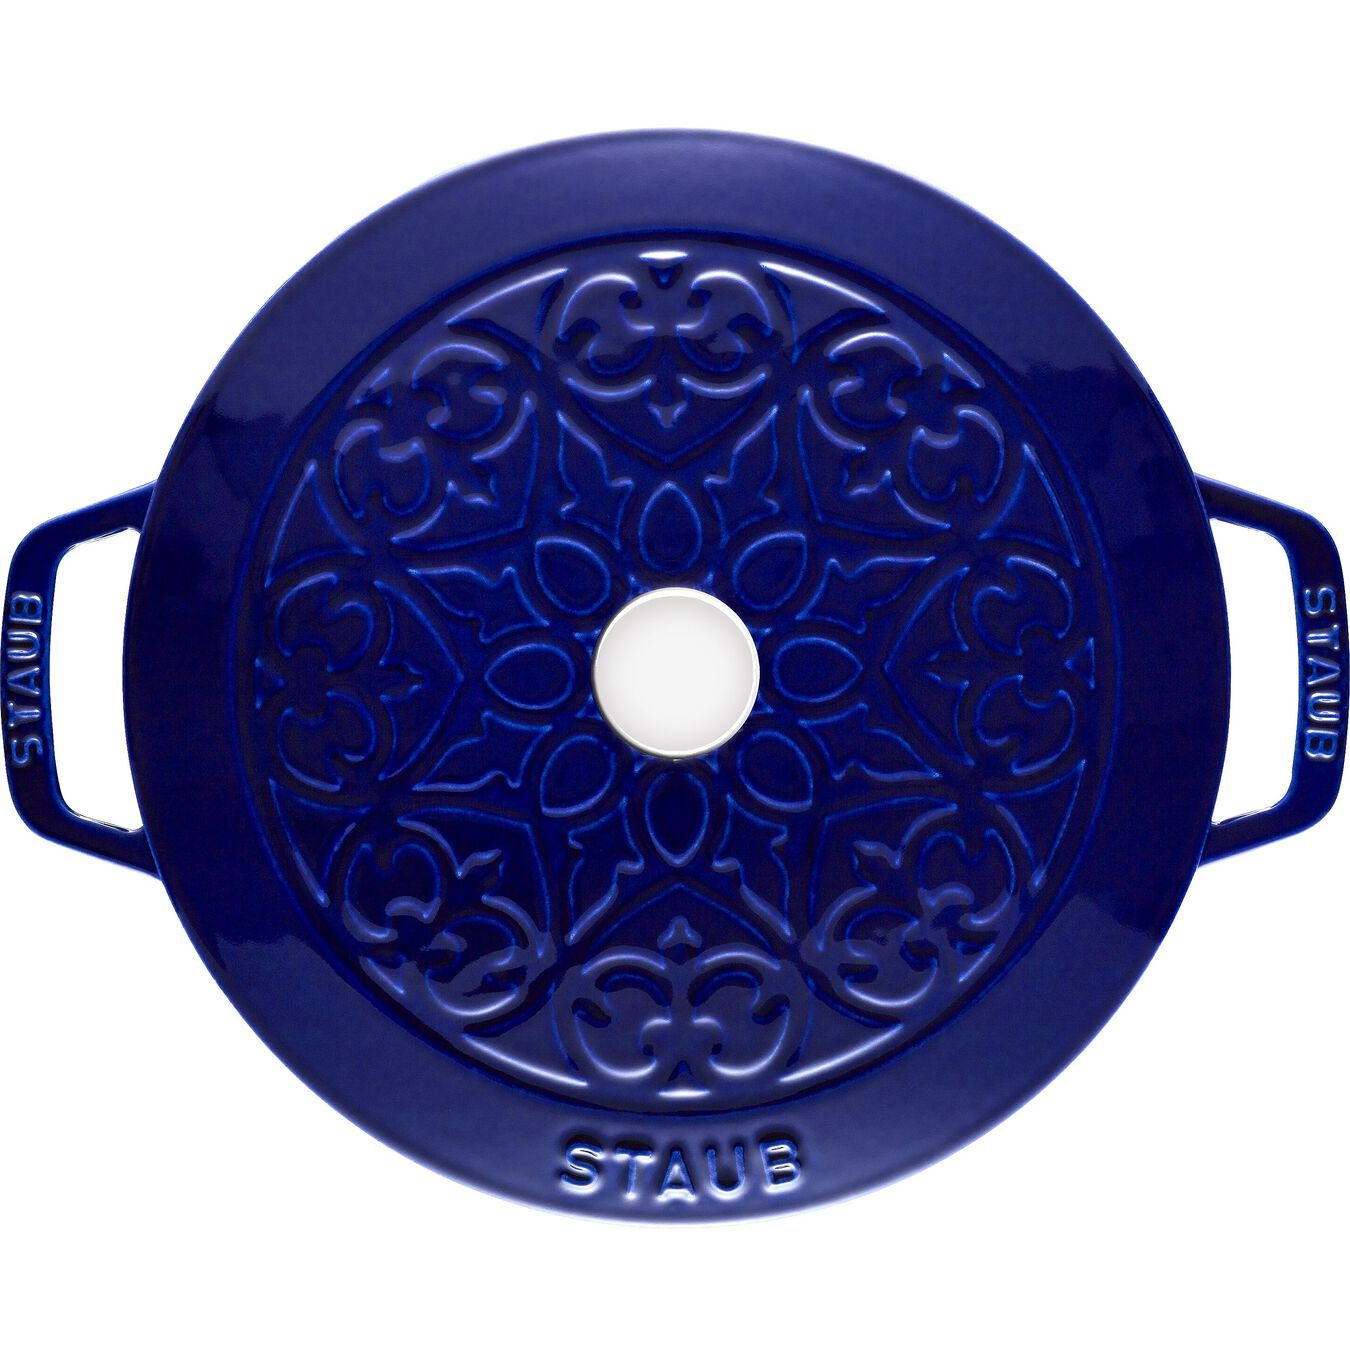 3.75-qt Essential French Oven with Lilly Lid - Dark Blue,,large 3